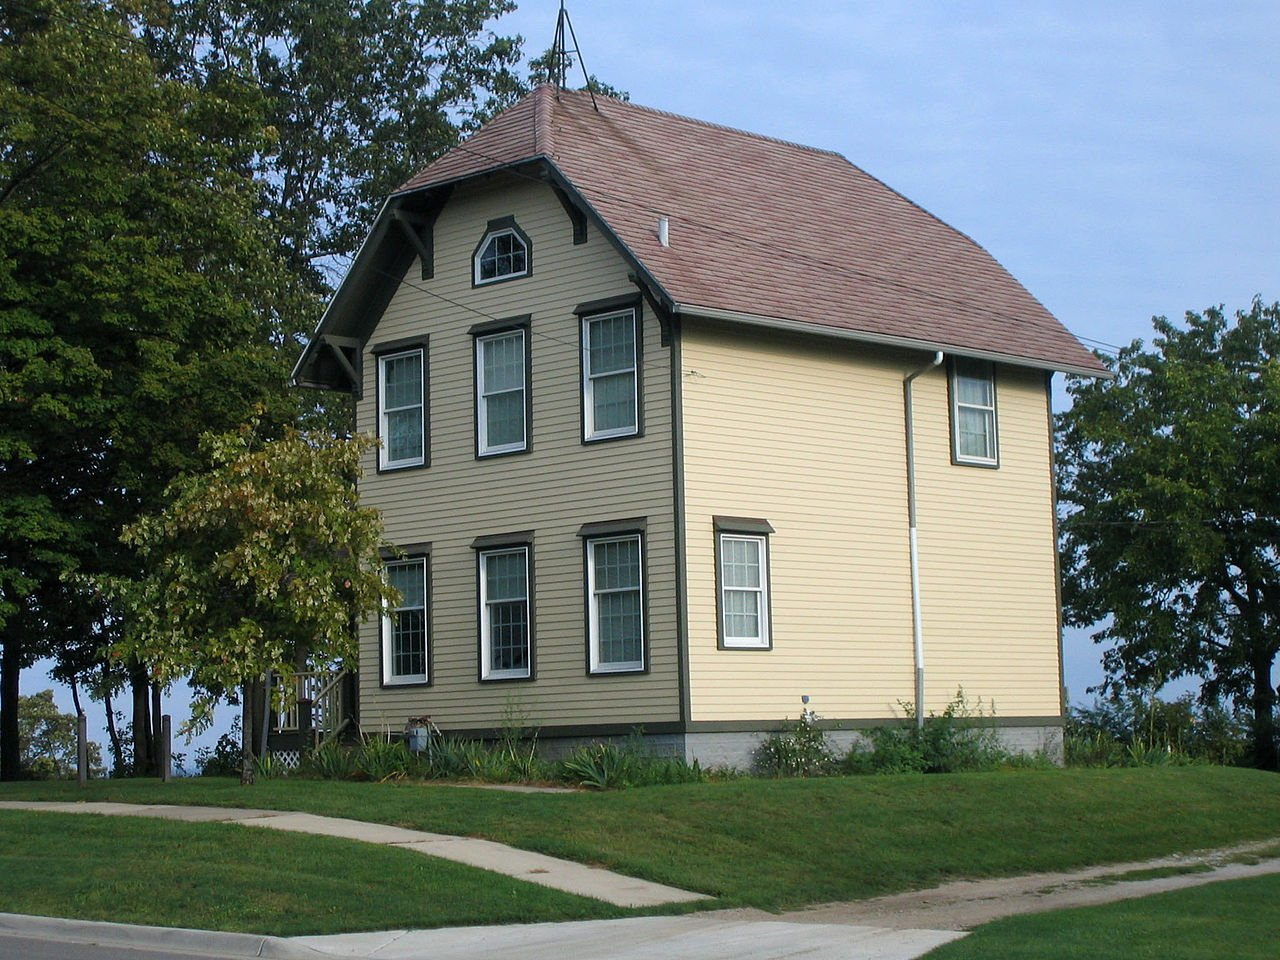 The lightkeeper's residence was built in 1872 and is now the Marialyce Canonie Great Lakes Research Library, which is operated by the Michigan Maritime Museum.